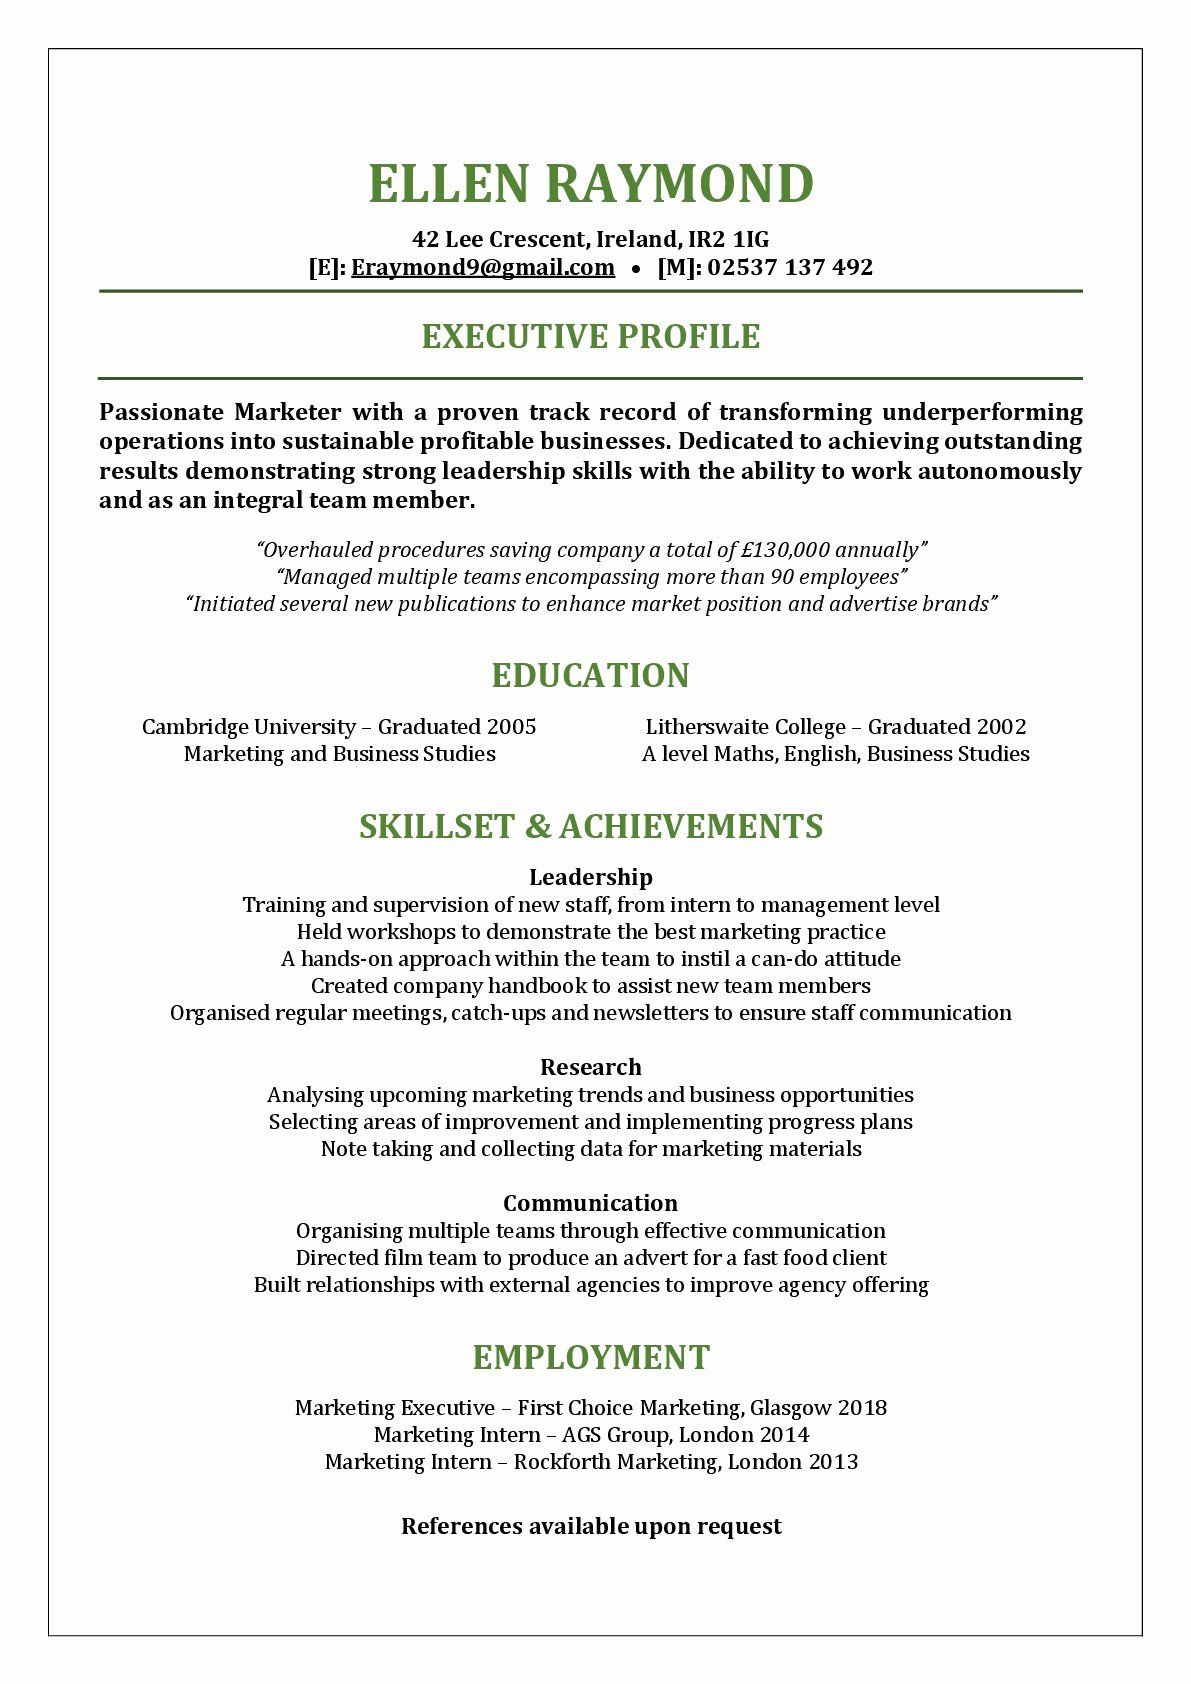 functional resume template word lovely got something to hide free leaf talent inc writer Resume Free Functional Resume Template 2020